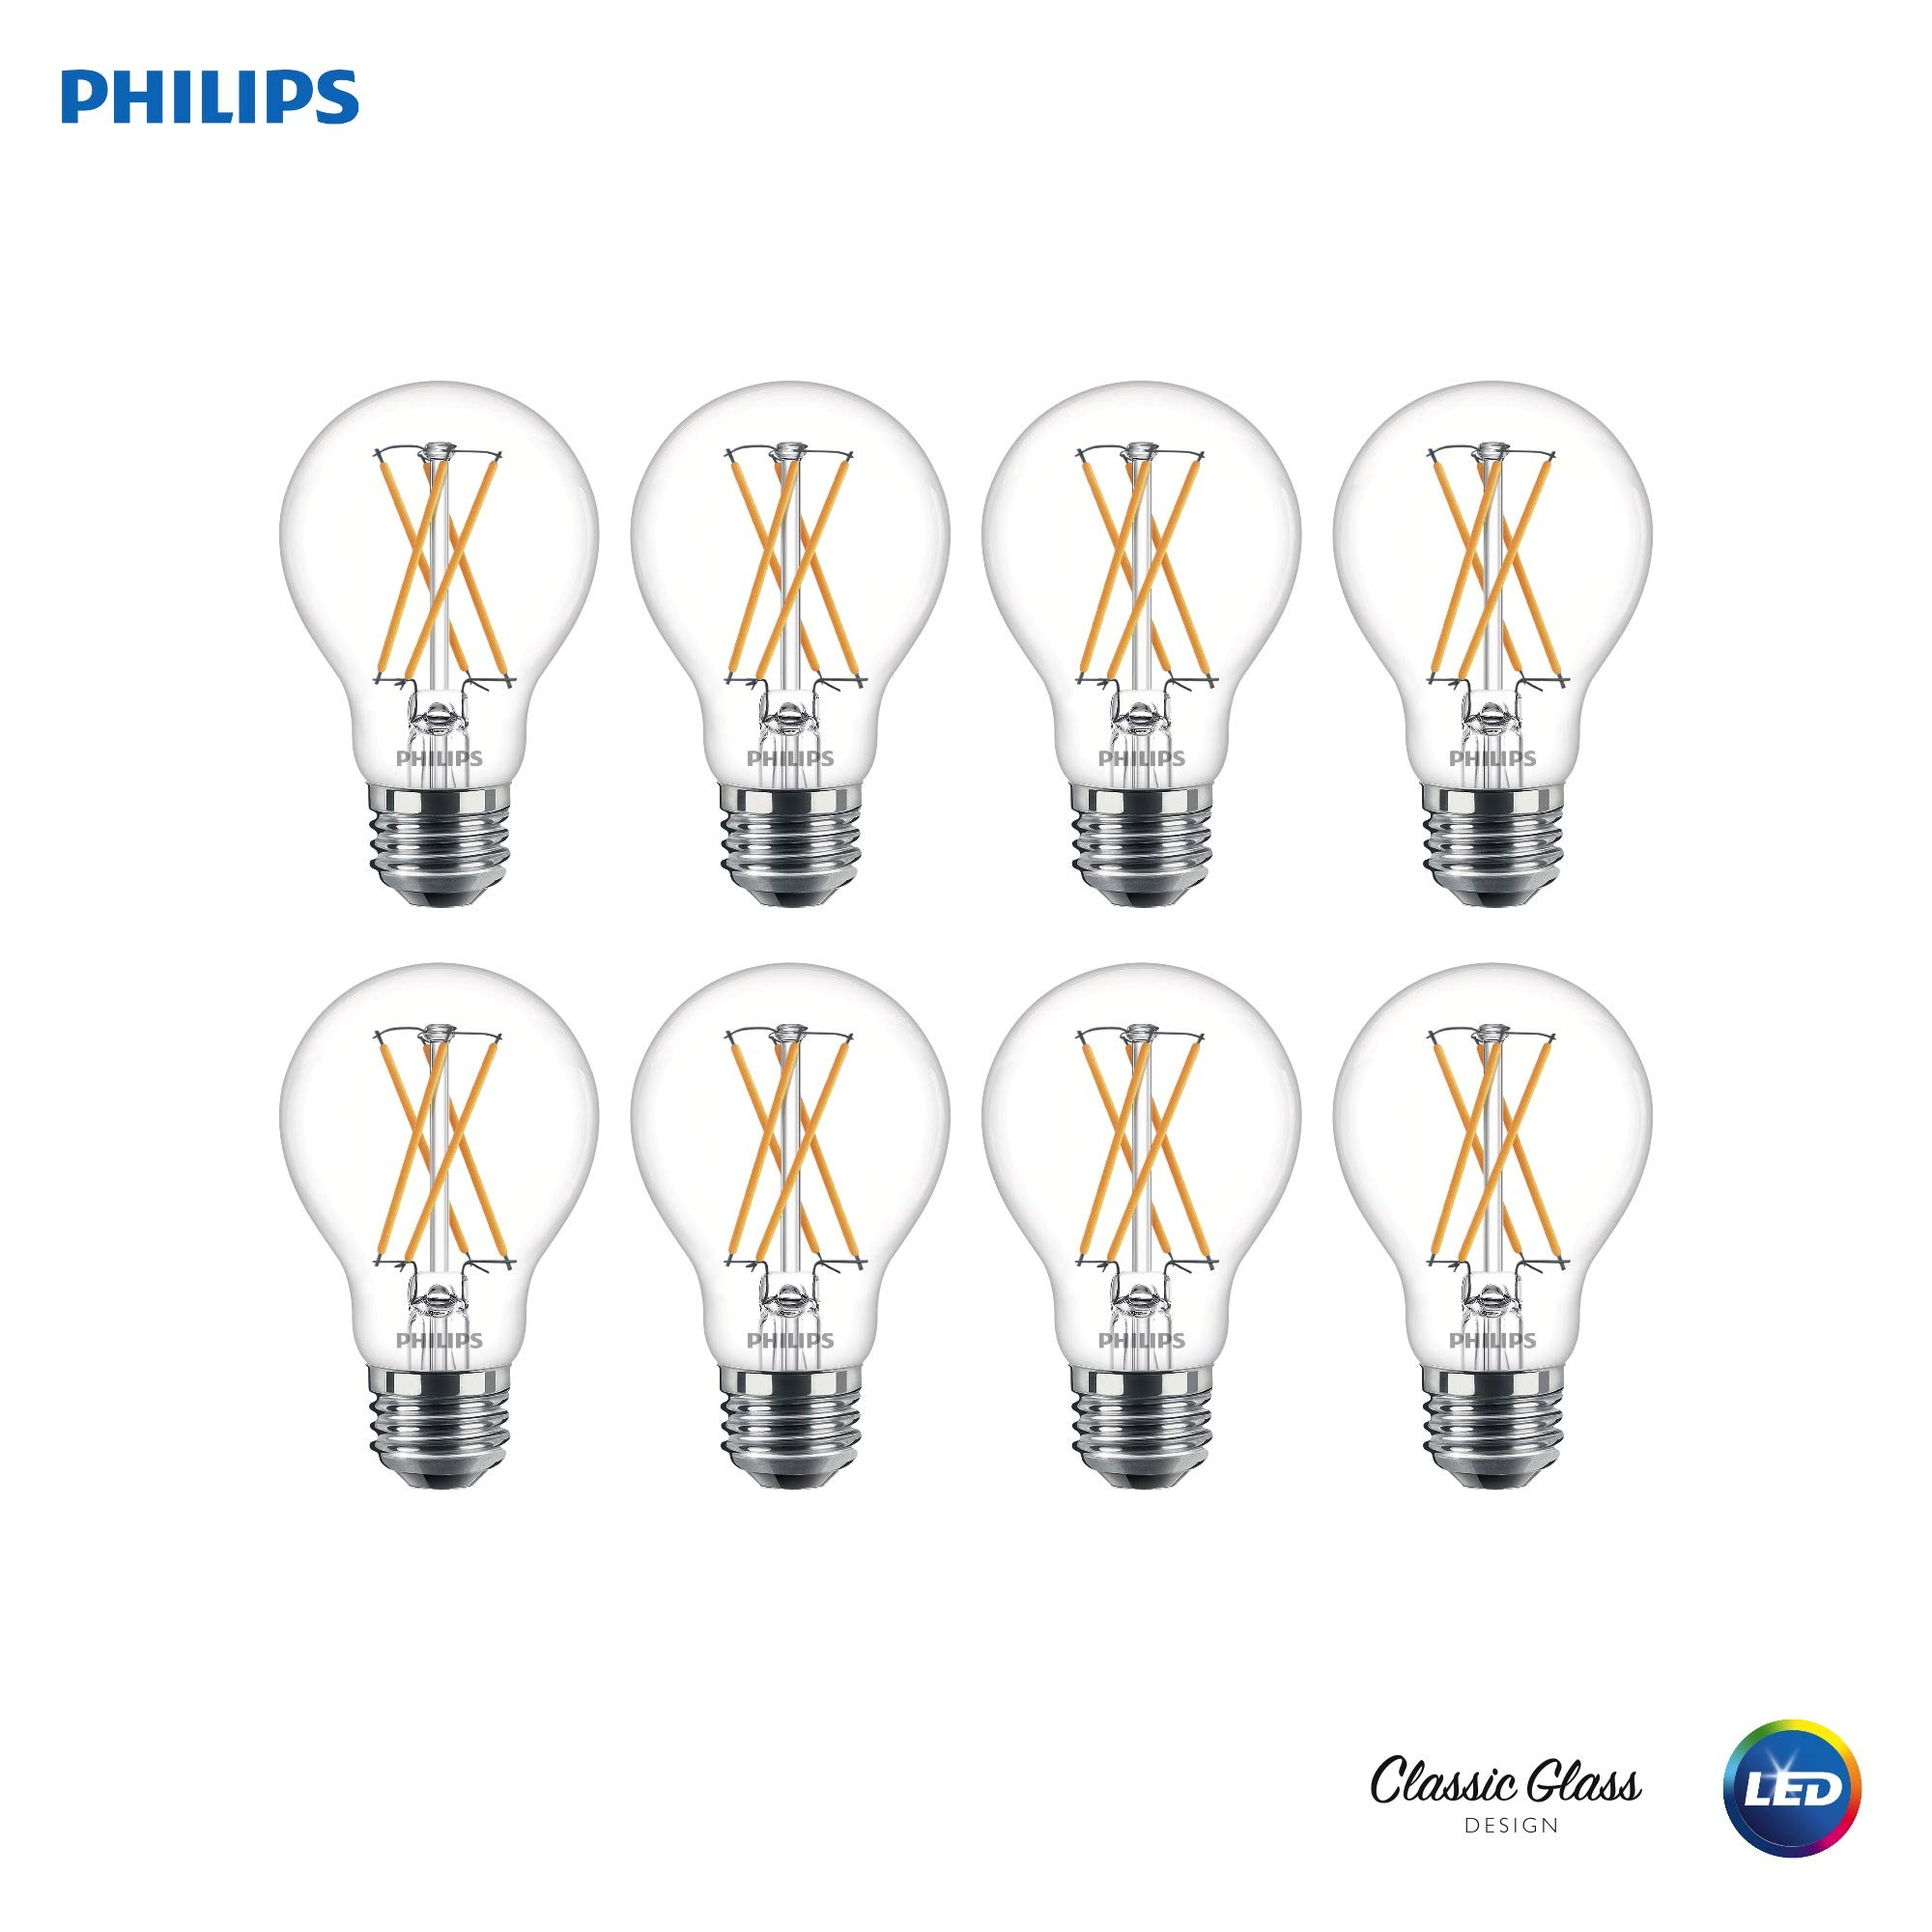 Philips 536532 LED Dimmable A19 Clear X-Filament Glass Light Bulb with Warm Glow Effect: 800-Lumens, 2700-Kelvin, (60-Watt Equivalent), Soft White, E26 Medium Screw Base, 8 Pack, Piece